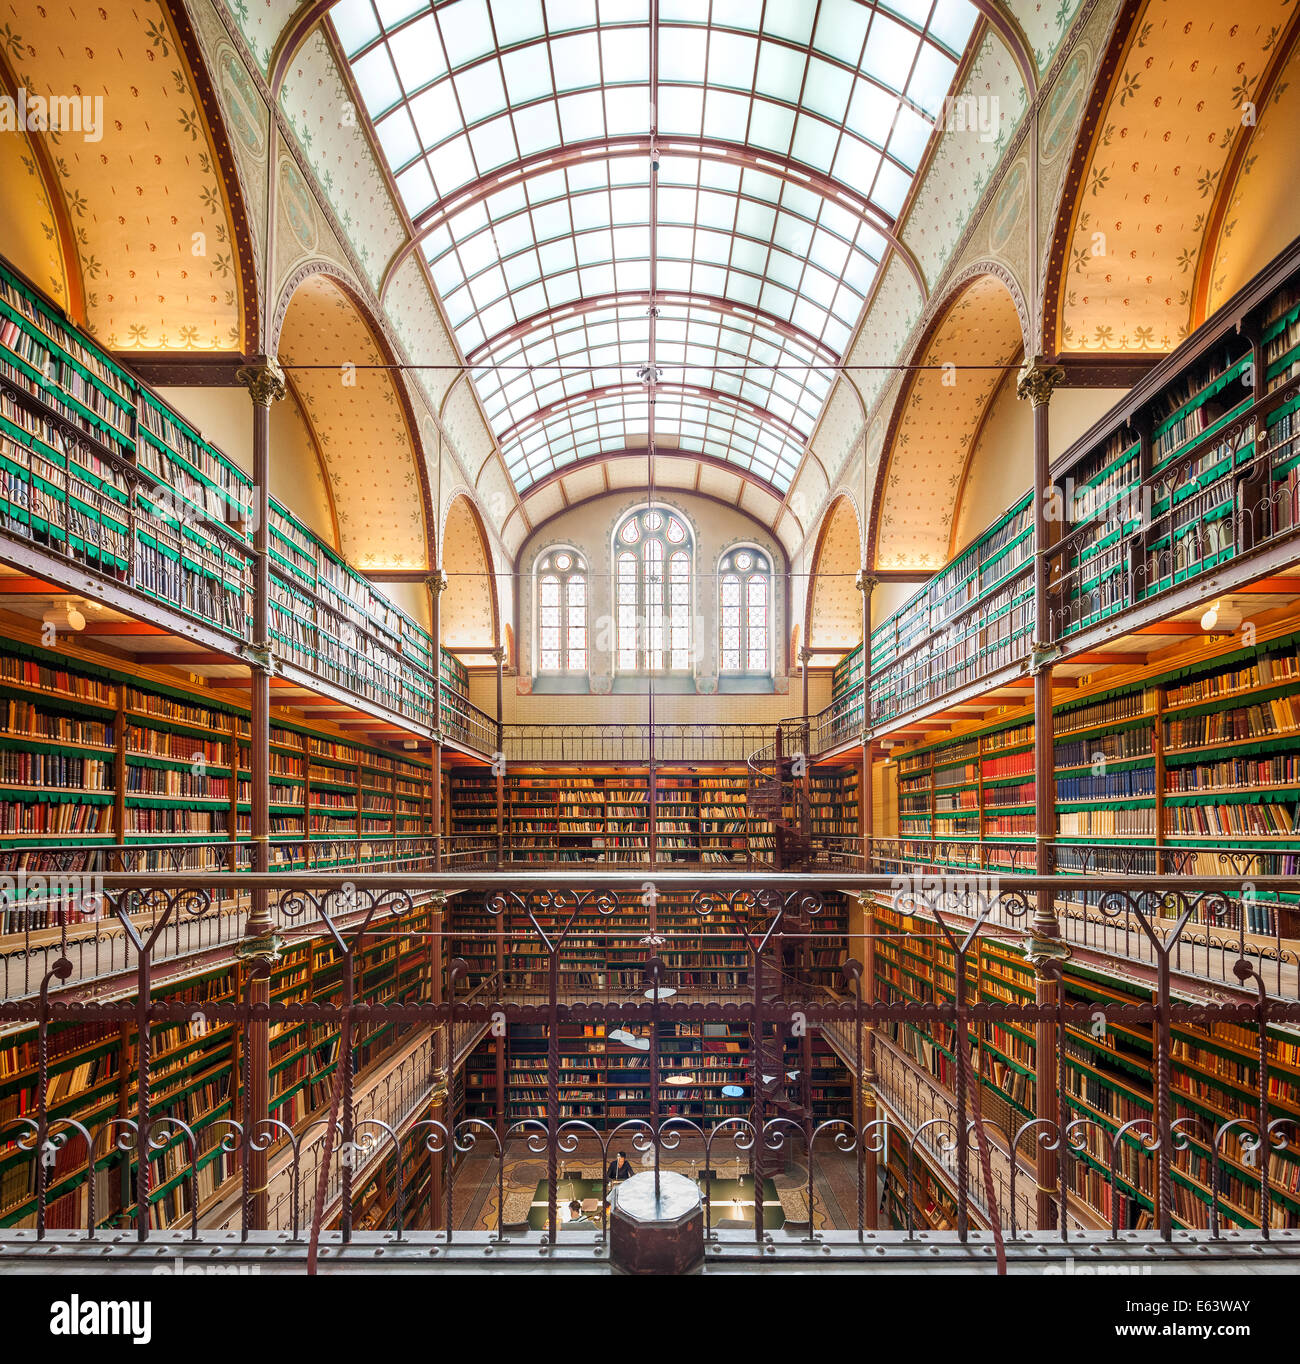 Rijksmuseum Amsterdam Library of the Amsterdam Rijksmuseum one of the most beautiful famous libraries and reading - Stock Image